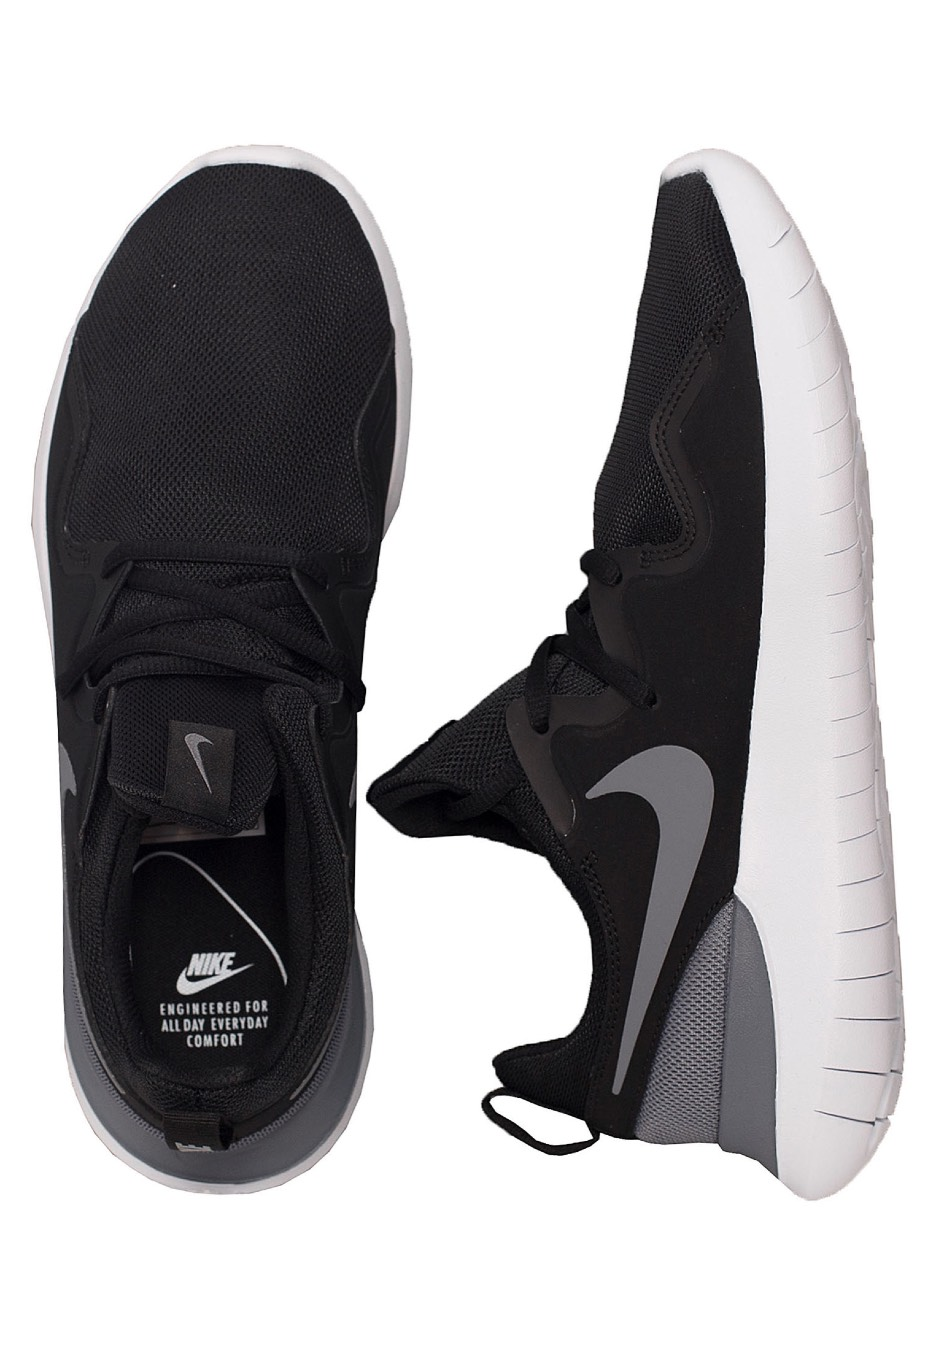 Chaussures Confortables Nike Tessen Blackcool Greywhite Chaussures Fr Ruoxidqh-090114-8553562 In Many Styles